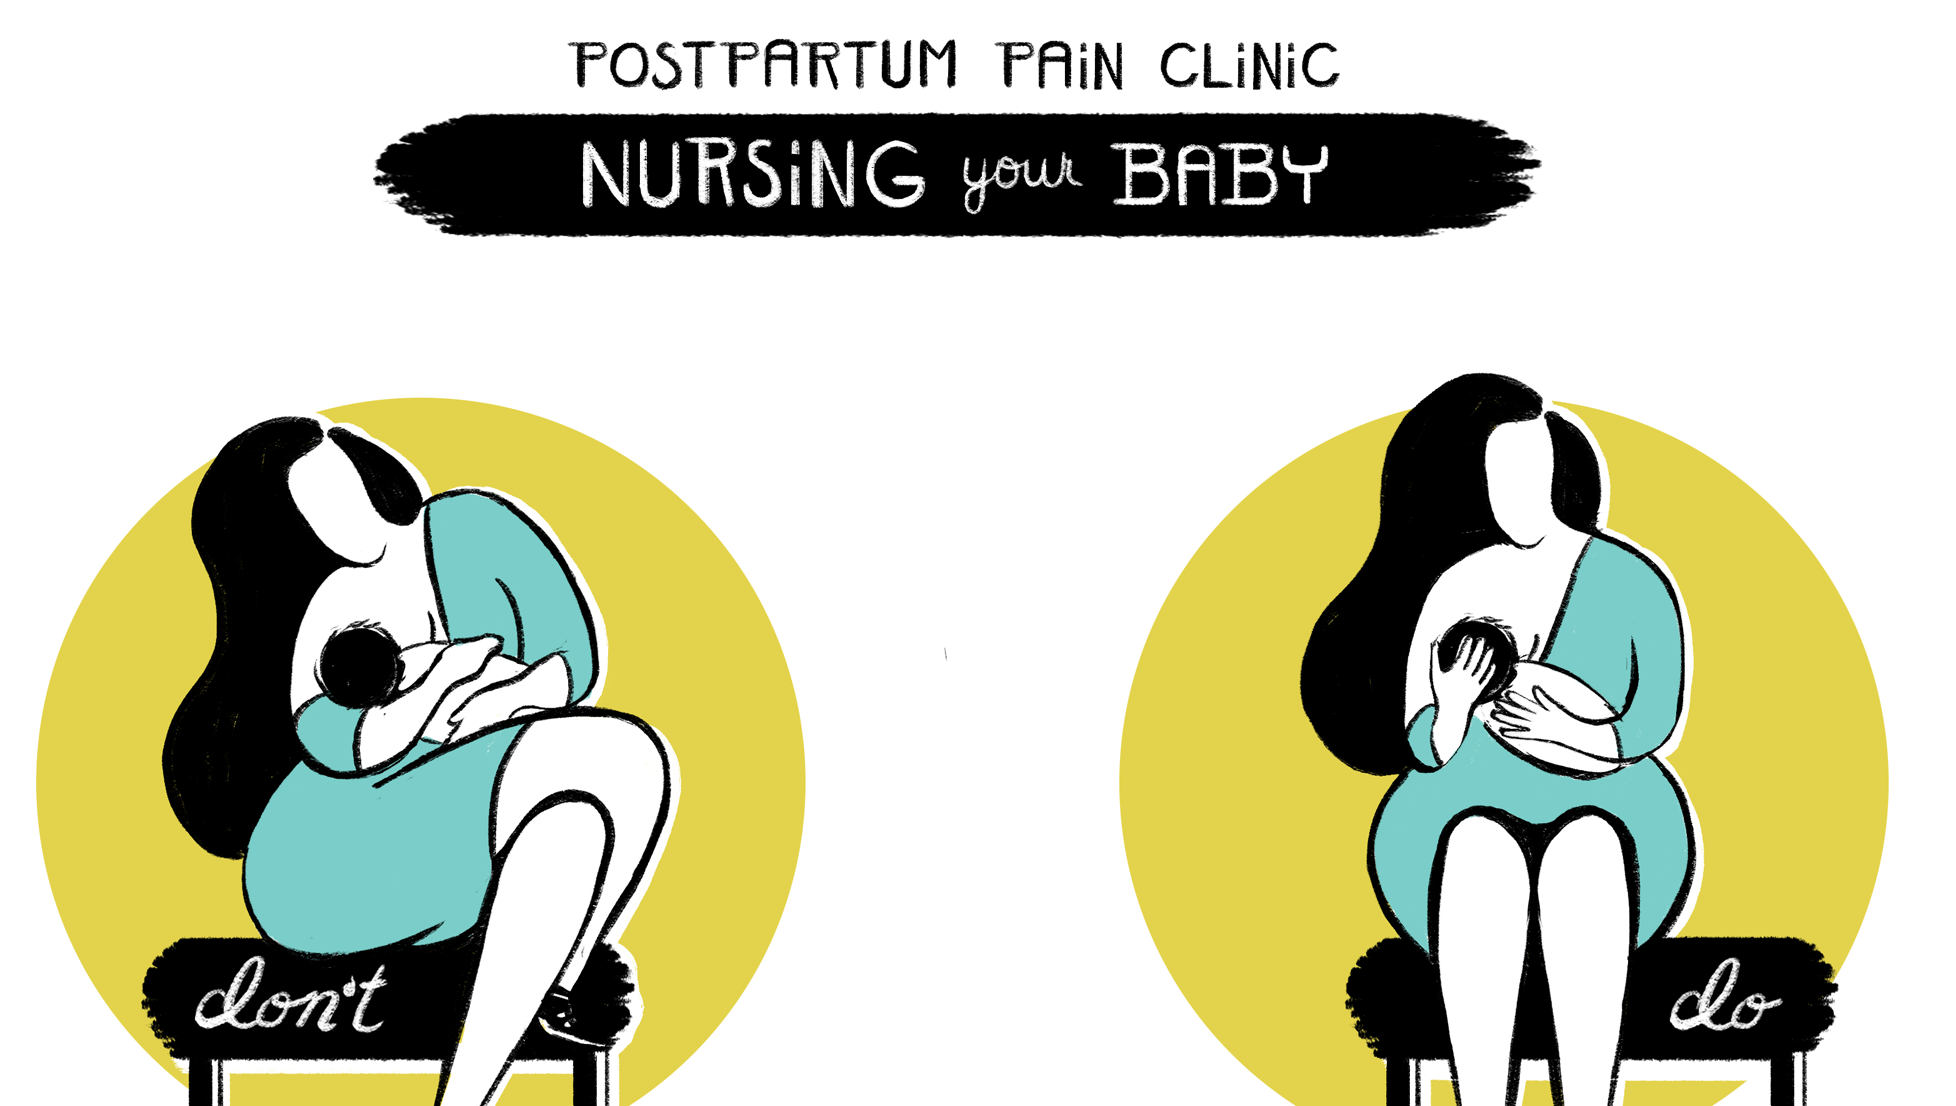 """Yellow, blue and black Cartoon image of woman breastfeeding baby demonstrating an image for """"don't"""" and """"do"""" in relation to the recommended posture of how to nurse a baby to avoid back pain"""